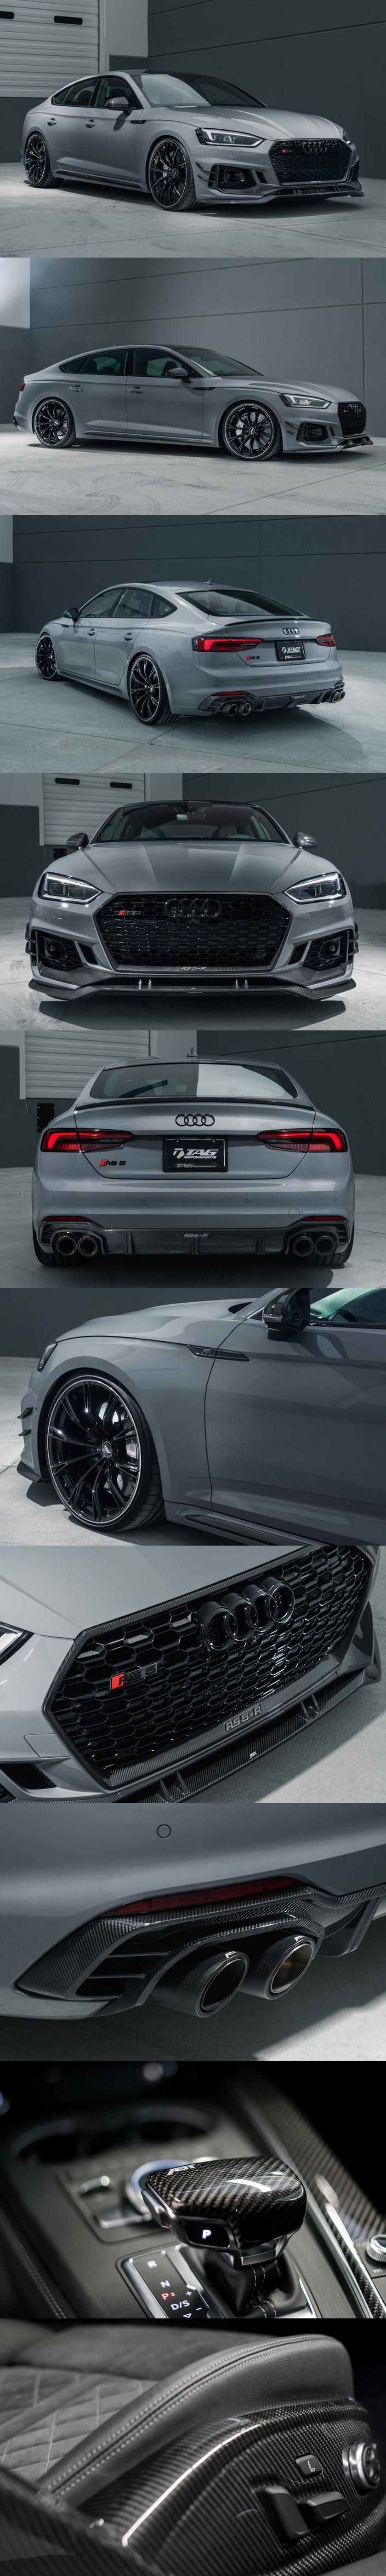 ABT Bringing 503-HP Audi RS 5 Sportback To America. The Bavarian tuners also have a thing for carbon fiber. #audivehicles